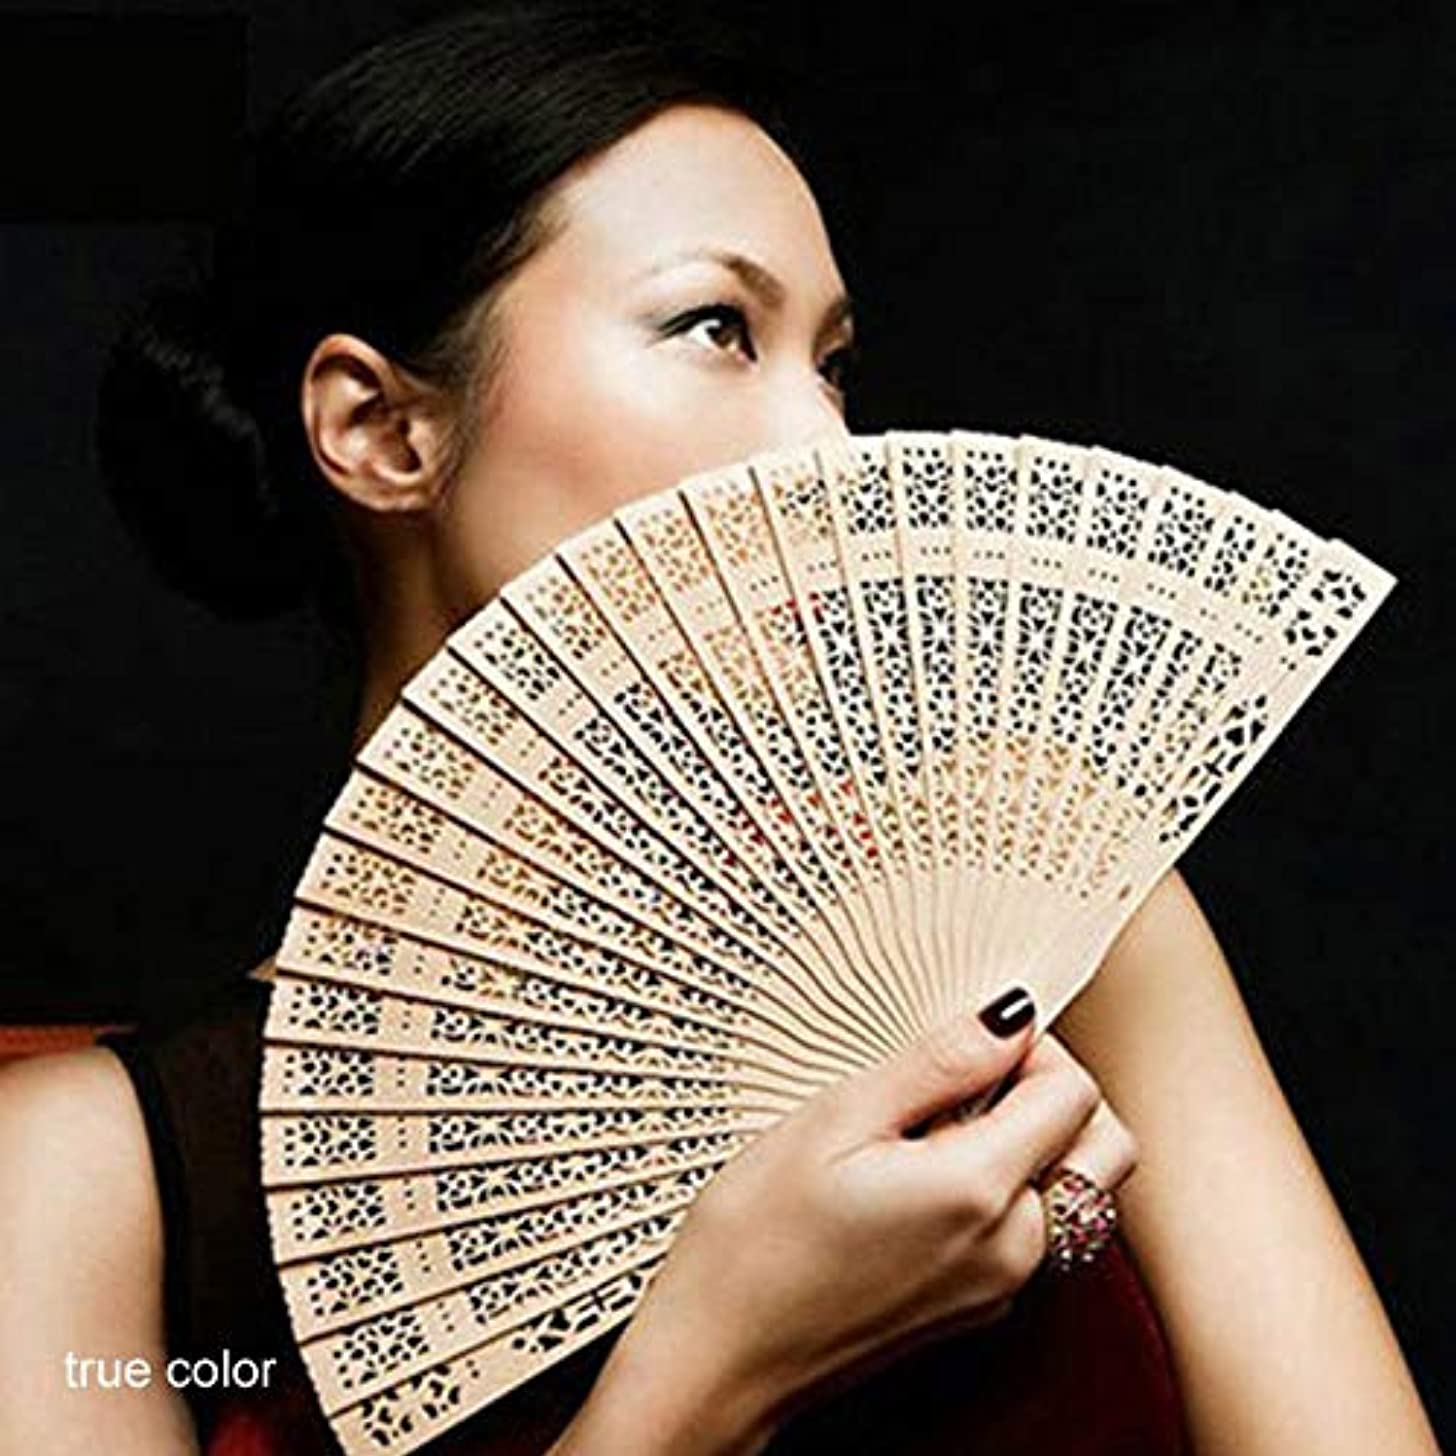 Party Favors - Party Favor Home Decor Crafts Fragrant Wood Bamboo Wooden Fan Hand Fans Summer Accesory Weddings - For Sunglasses Visors Train Bags Lollipops Travel Educational Teen With